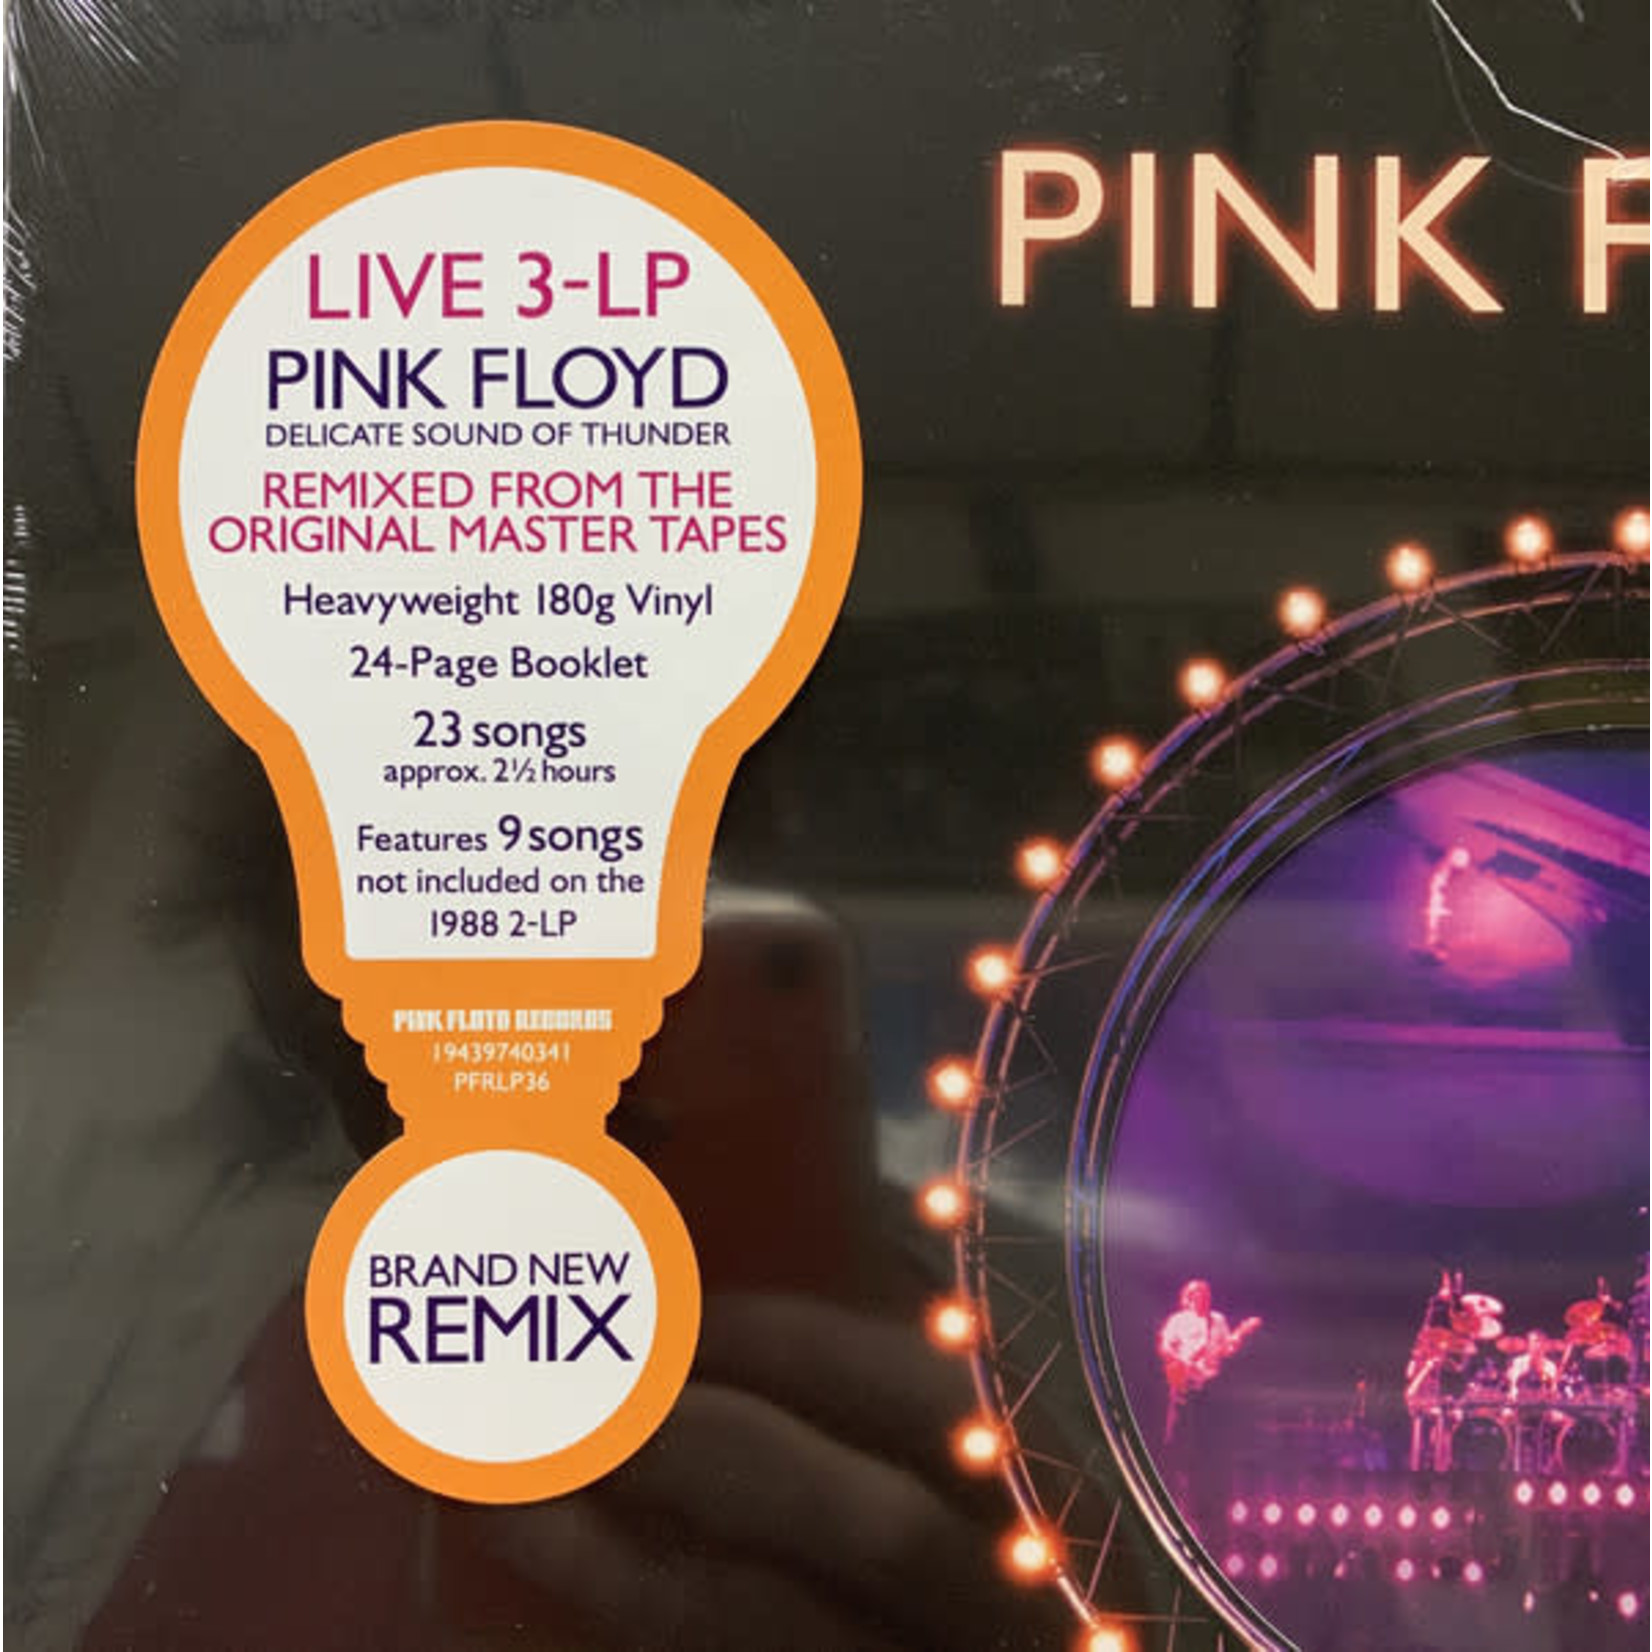 PINK FLOYD DELICATE SOUND OF THUNDER - RESTORED, RE-EDITED, REMIXED